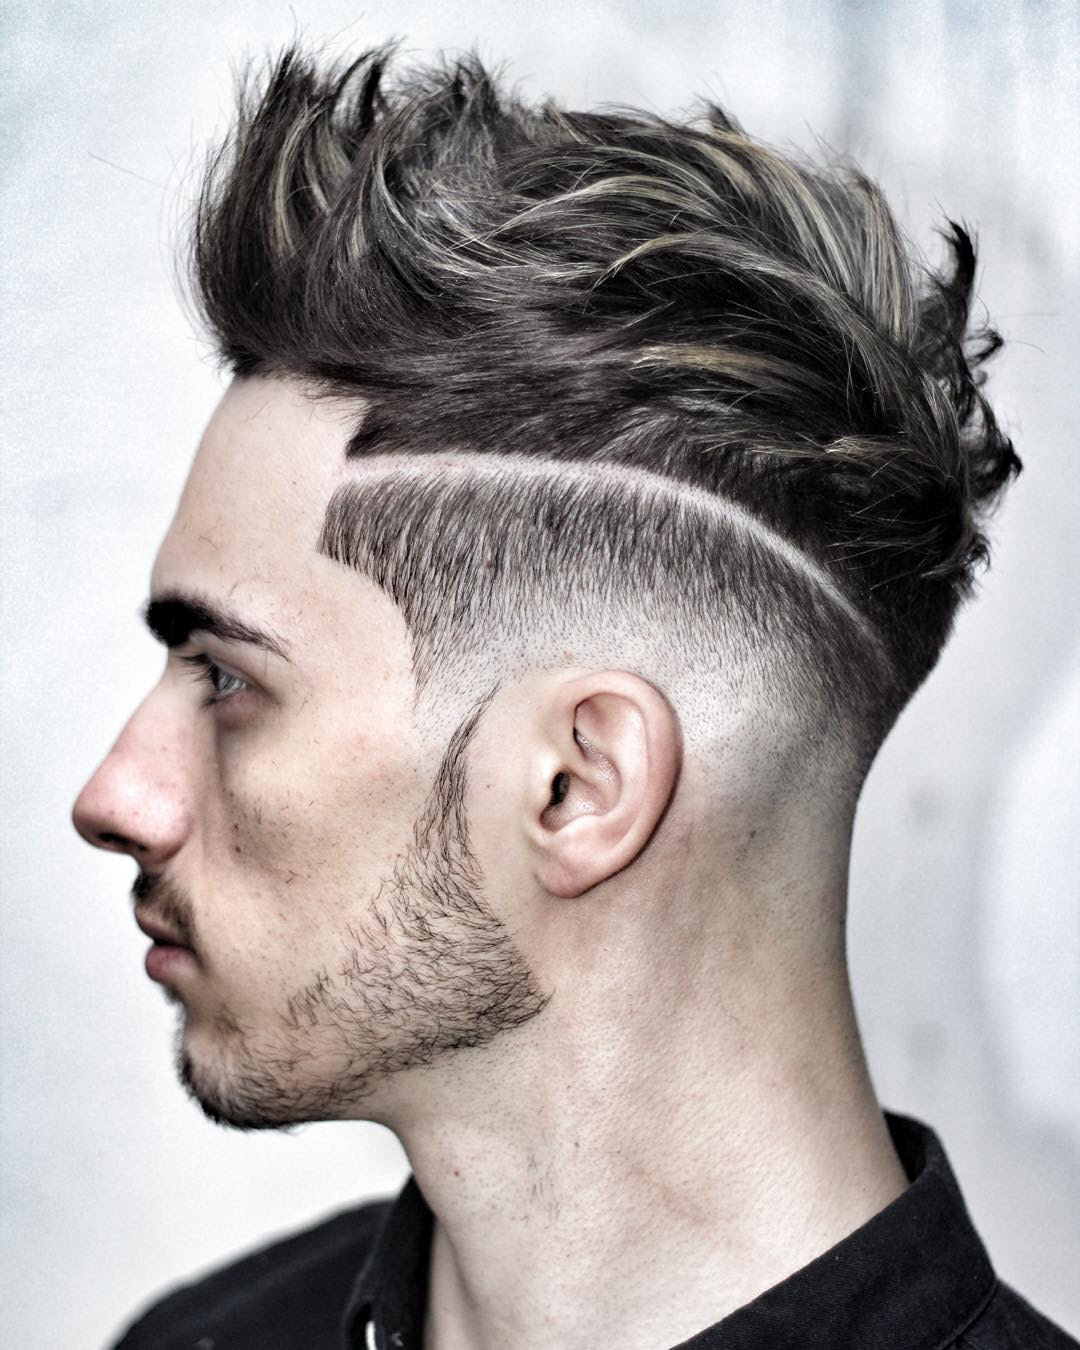 100 Different Inspirational Haircuts for Men in 2020